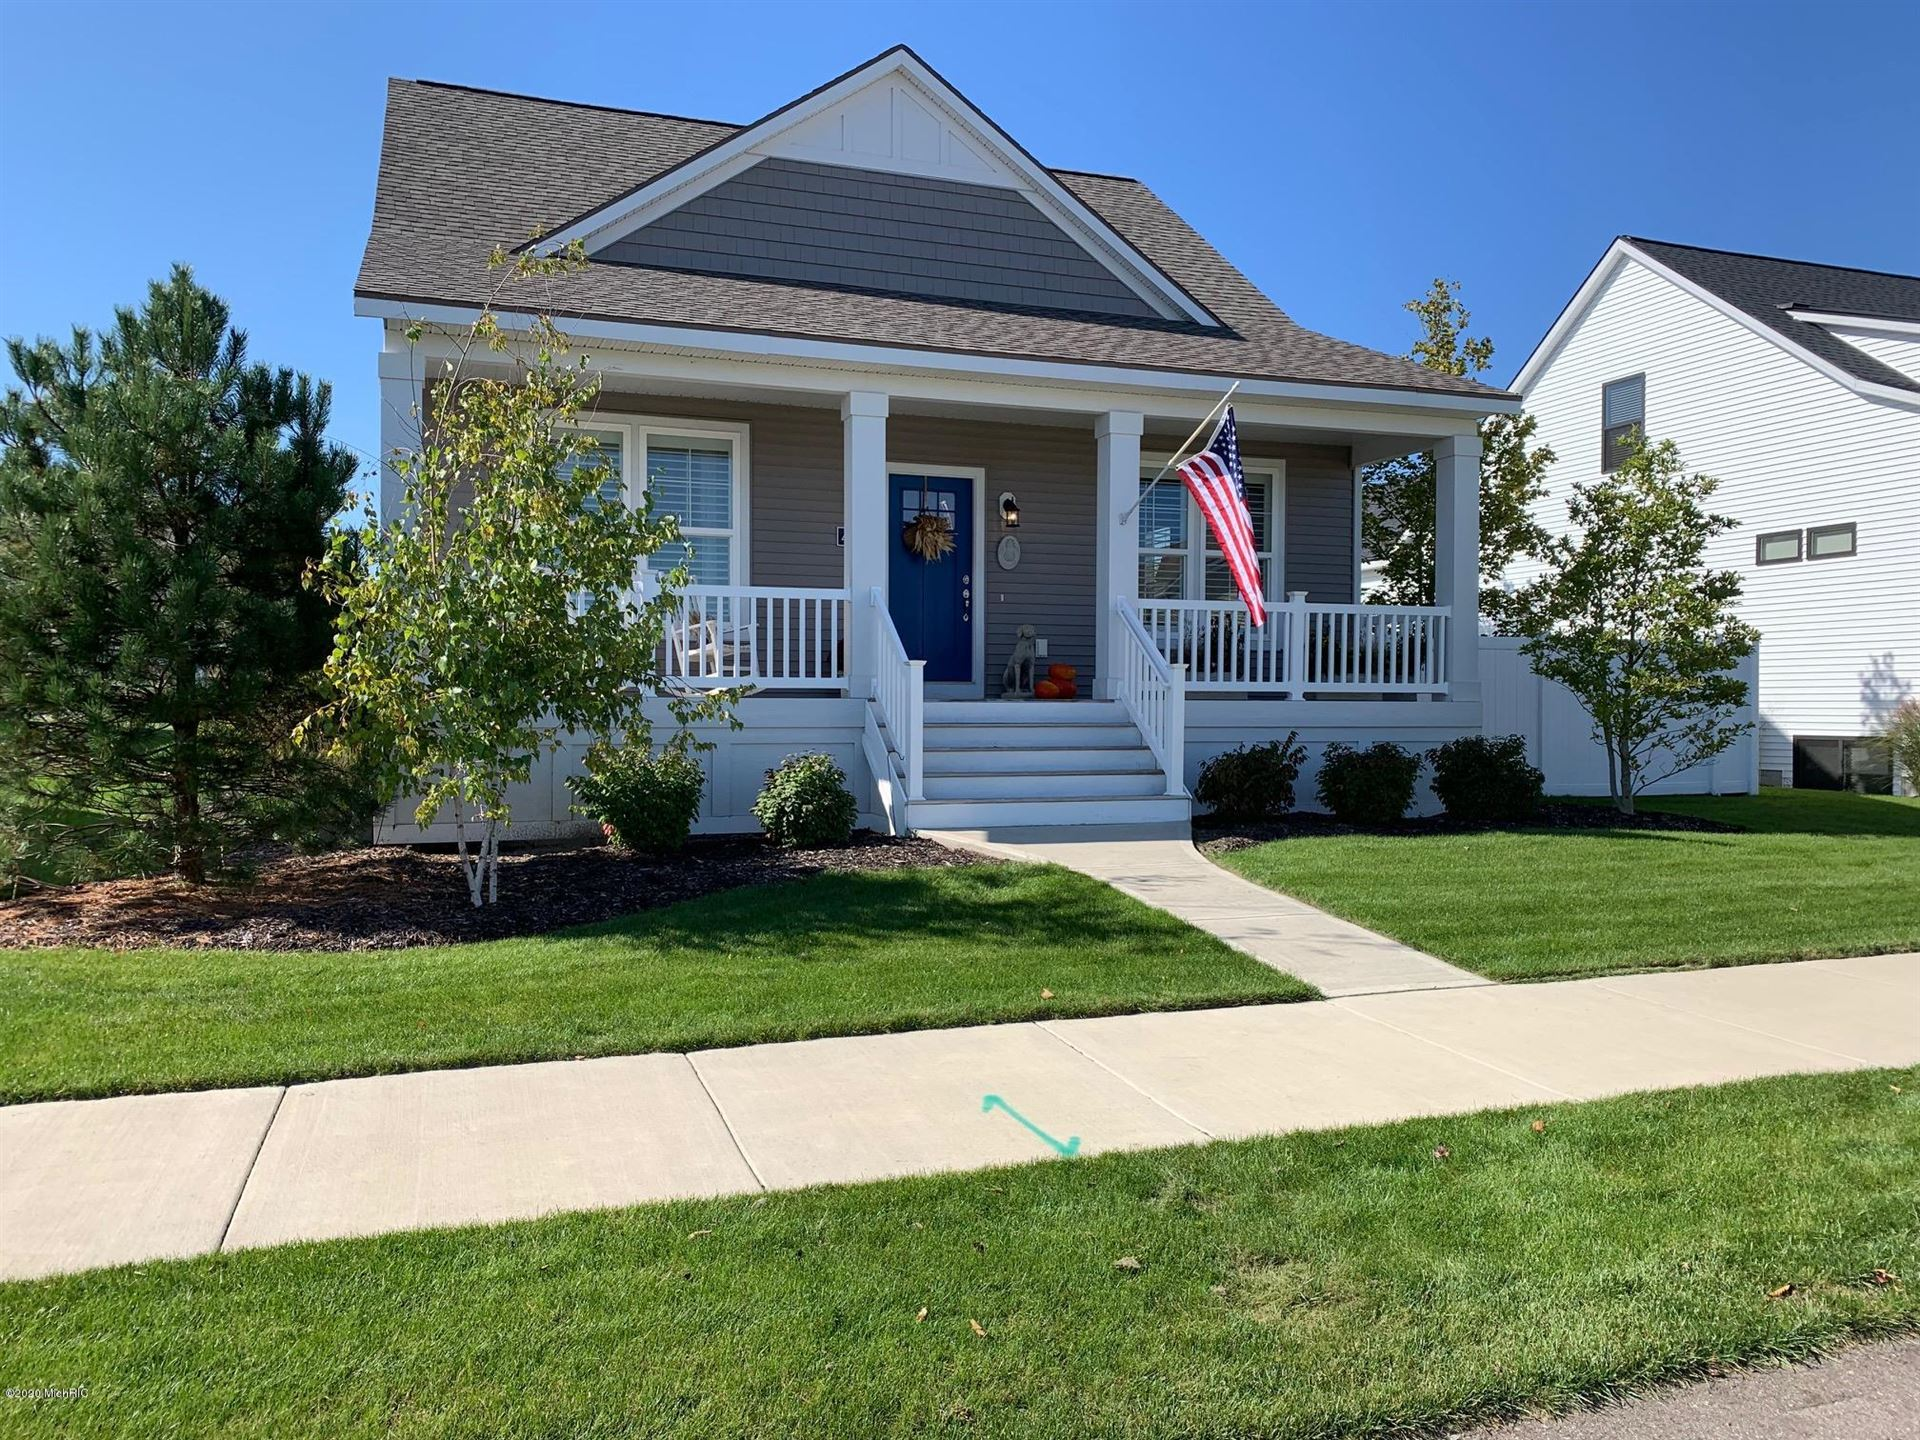 Photo of 4657 W Perry Circle, Holland, MI 49424 (MLS # 20003090)